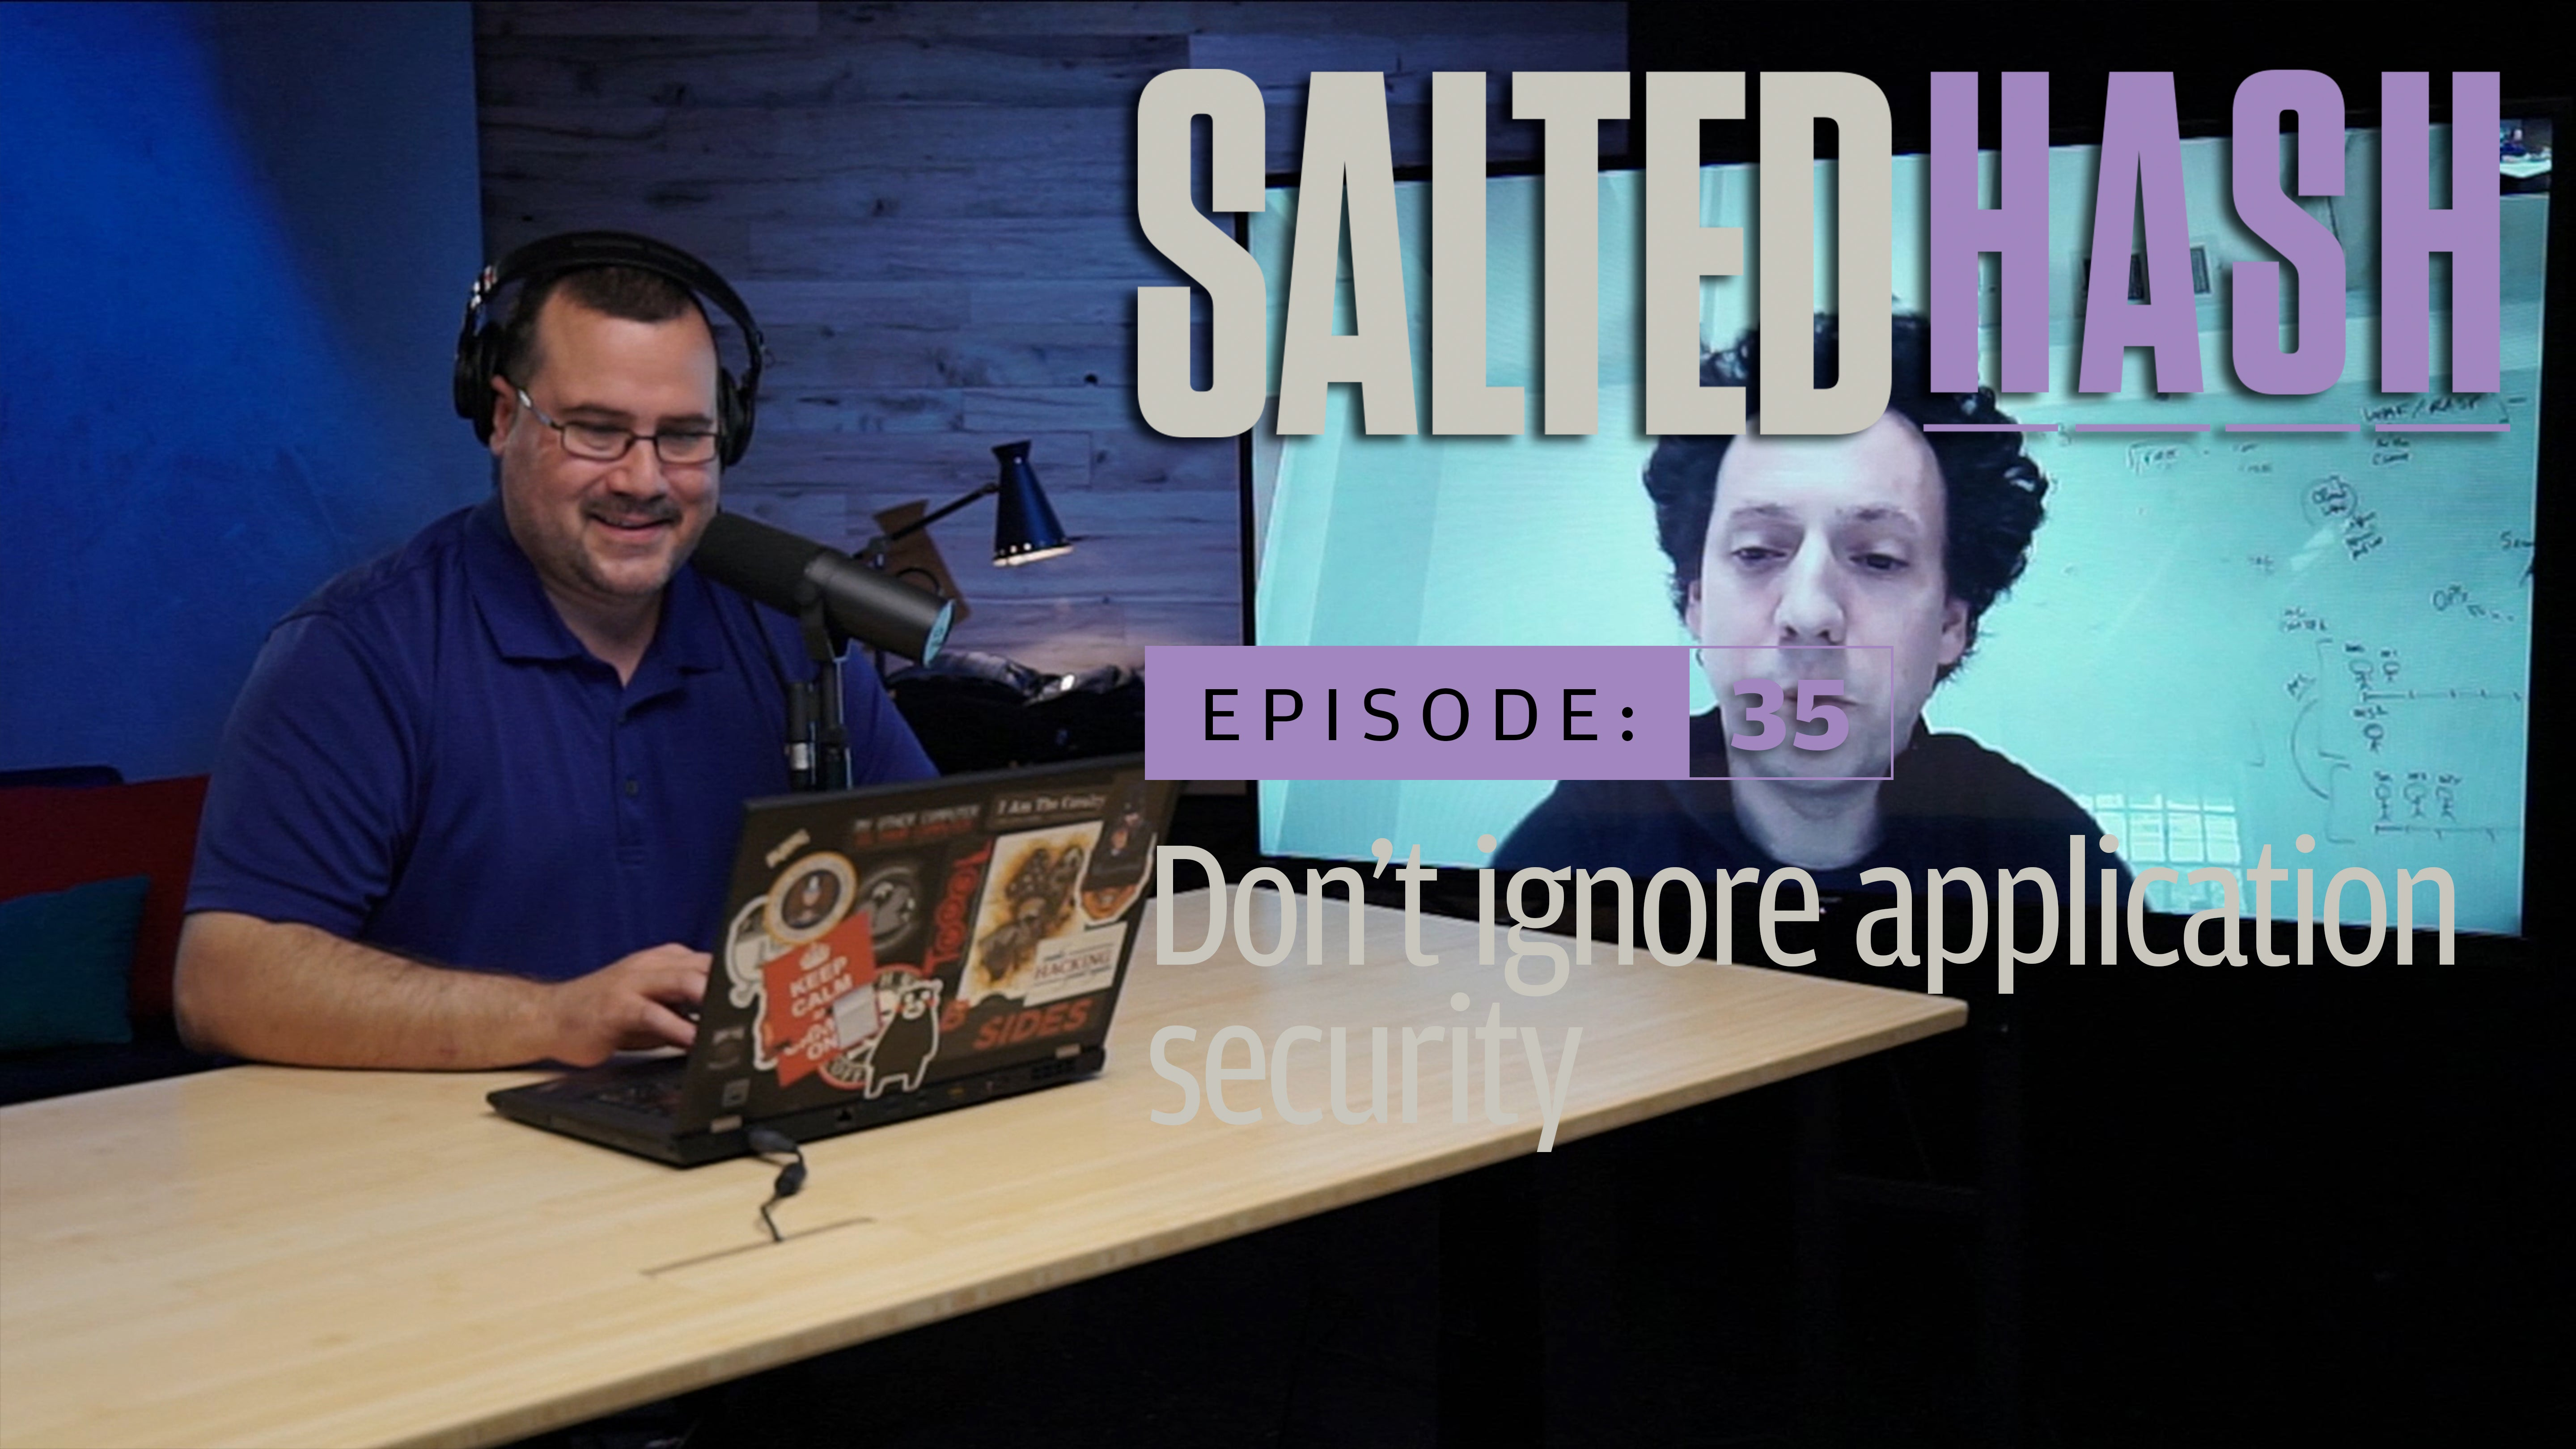 Don't ignore application security | Salted Hash Ep 35